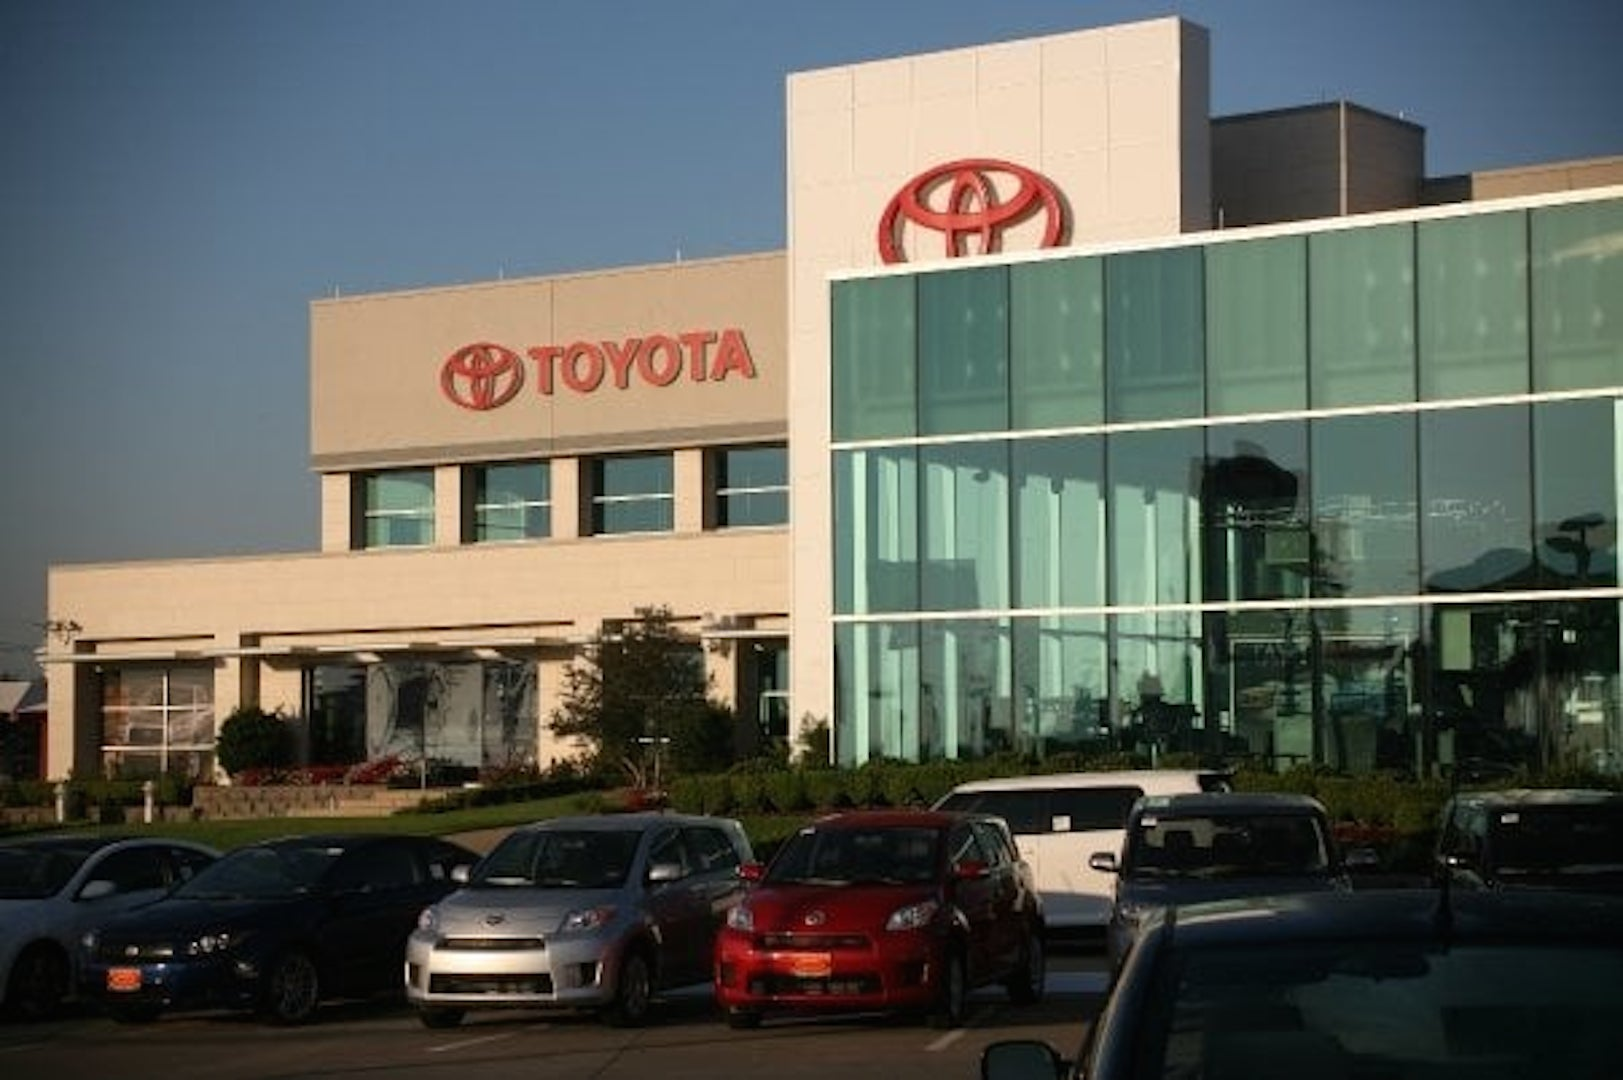 Lone Star Toyota of Lewisville image 8